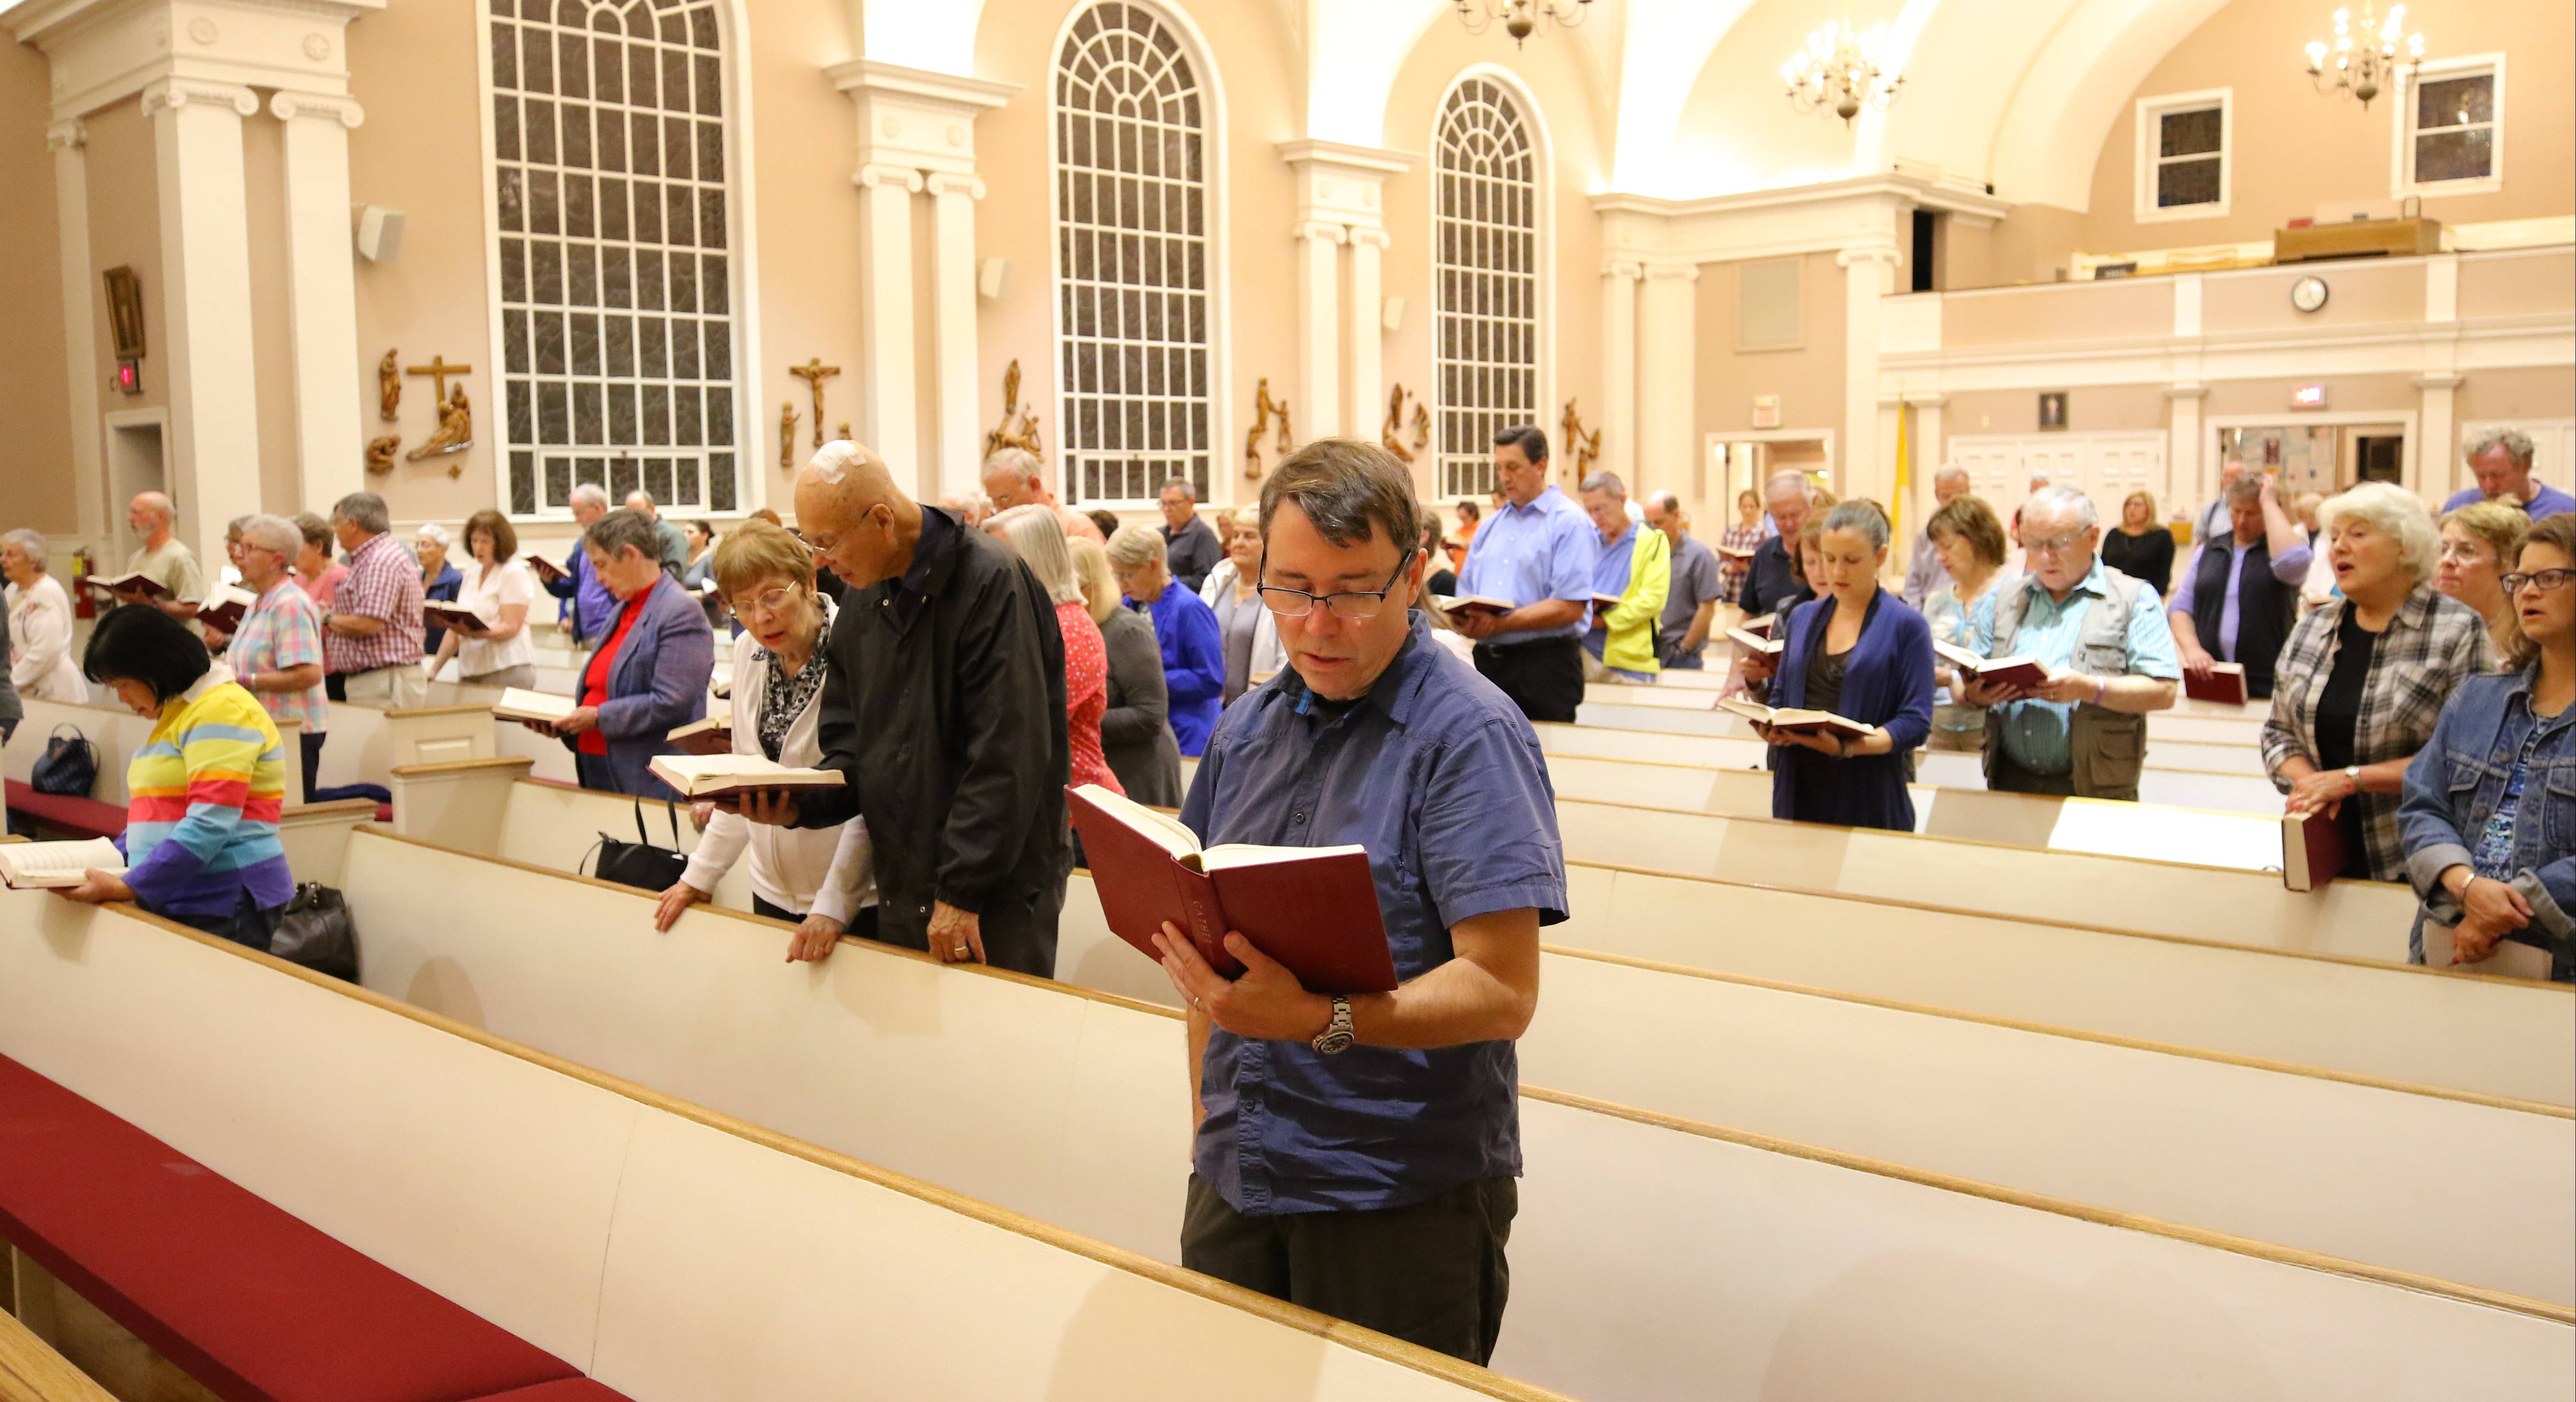 Parishioners attend a prayer service for the Las Vegas shooting victims Monday evening at St. James Catholic Church in Arlington Heights.